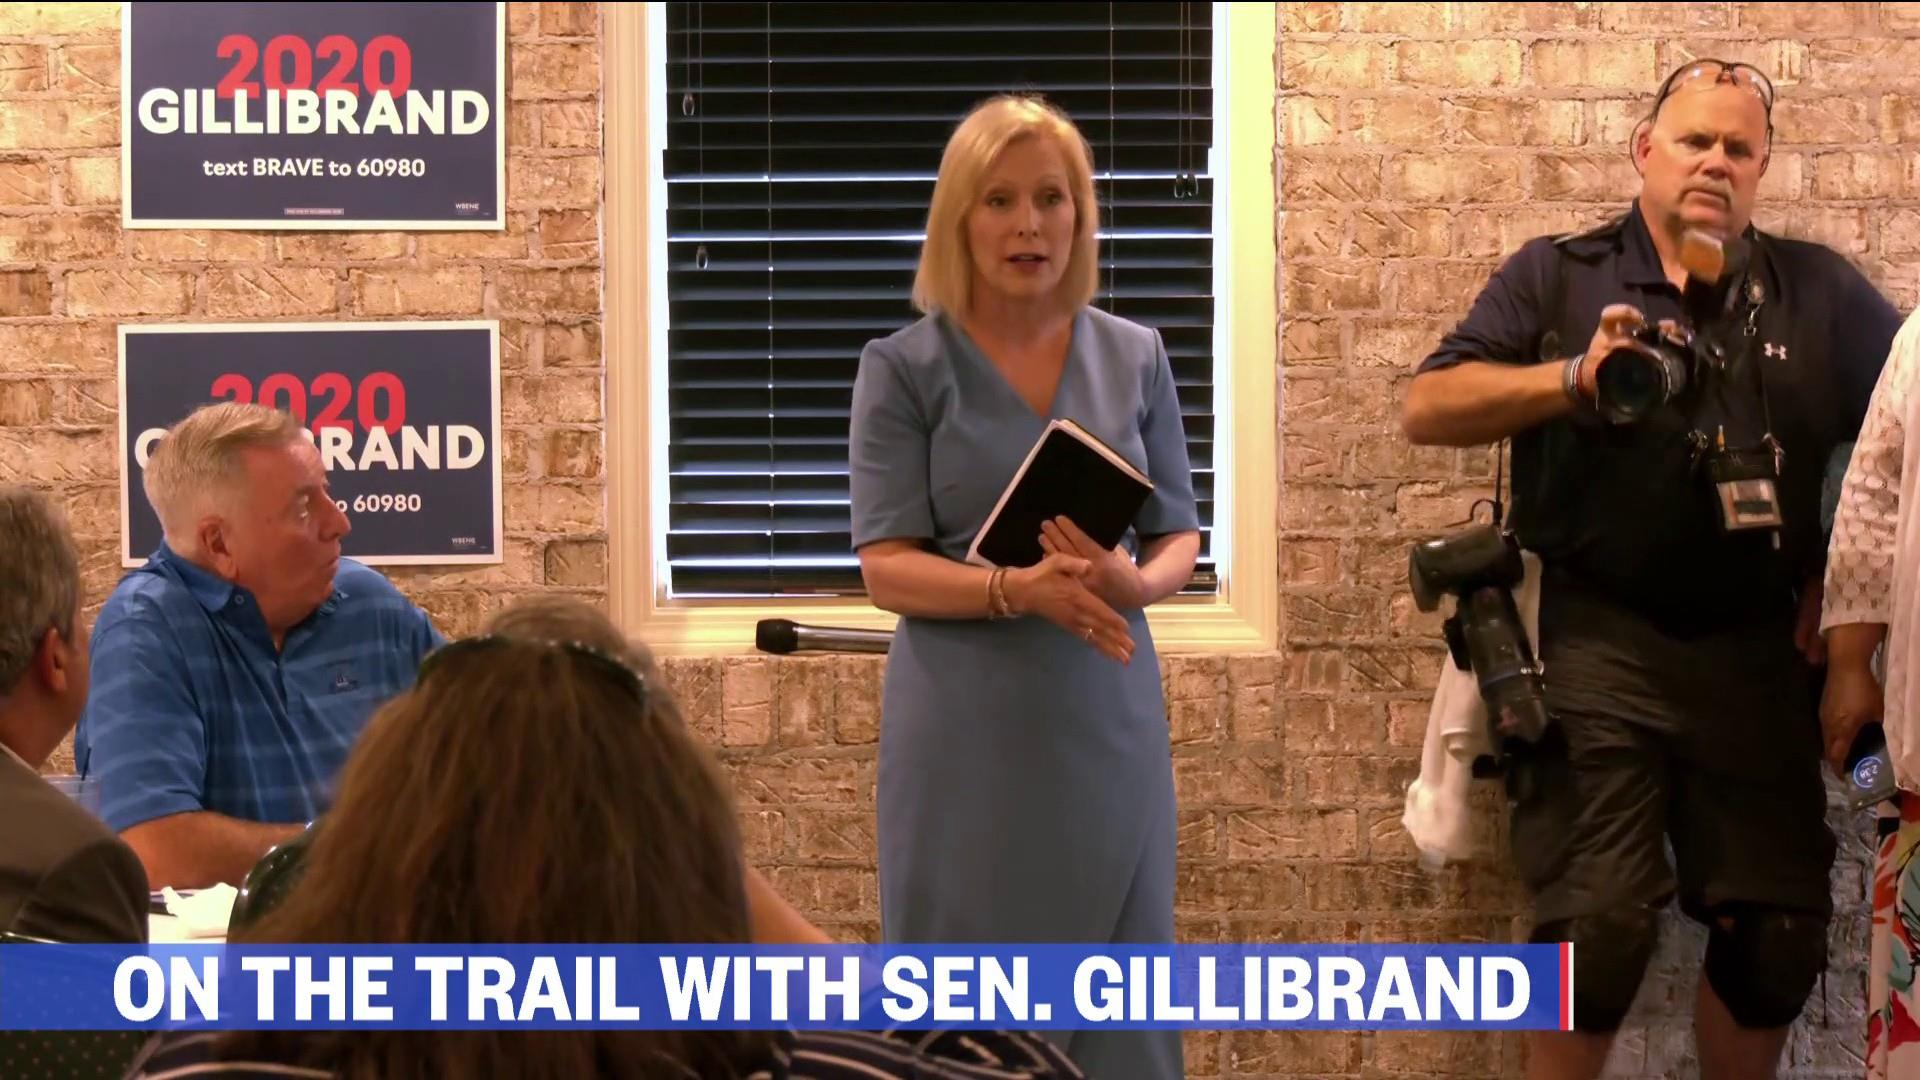 Embed Roadtrip: On the bus with Kirsten Gillibrand